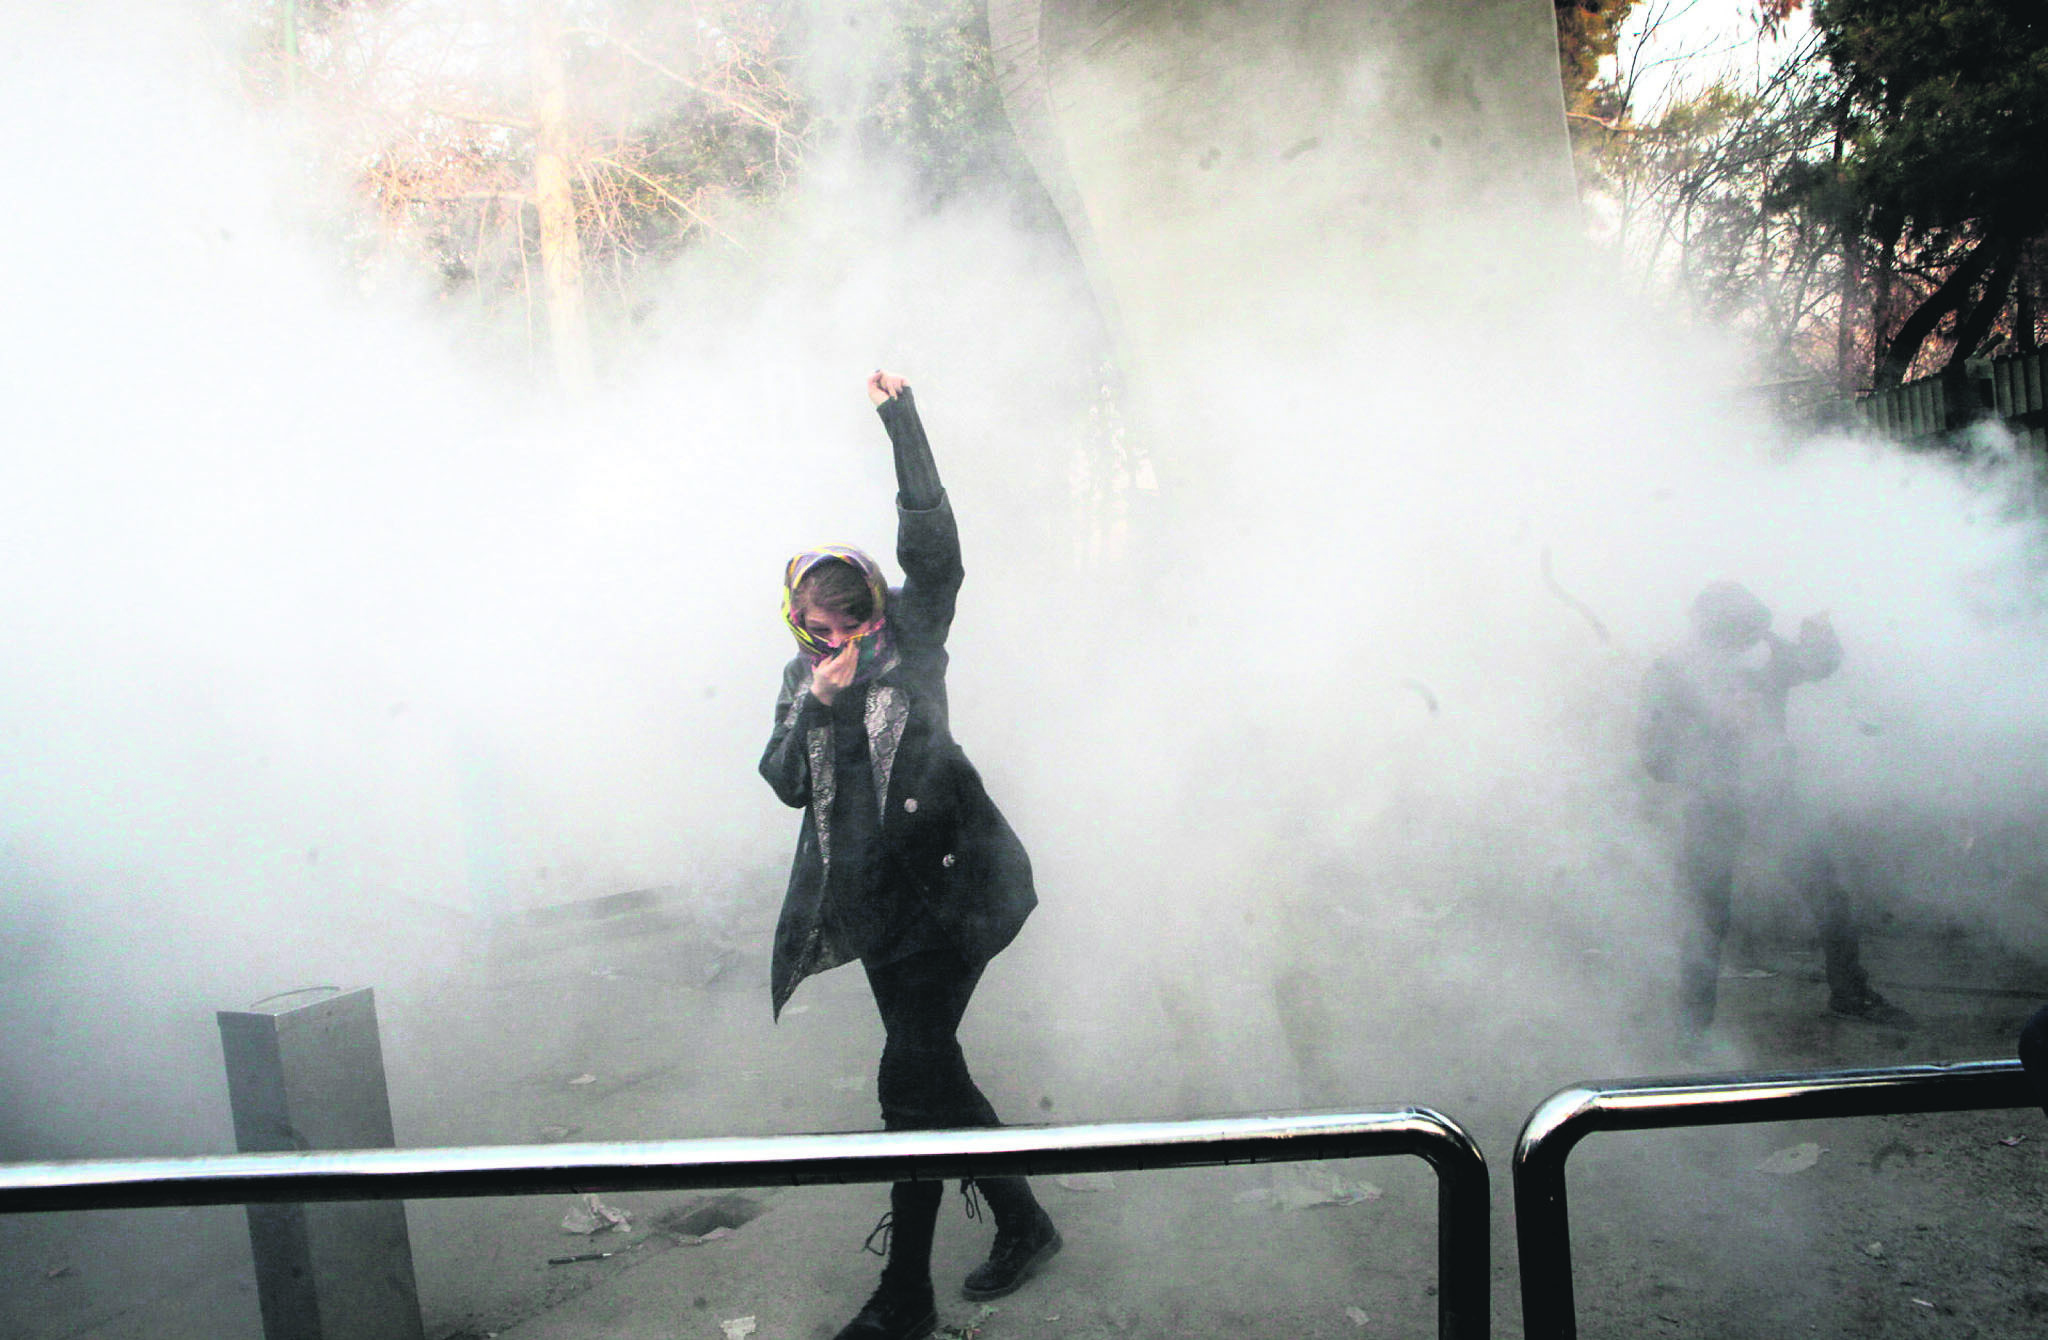 Iranian students clash with riot police during an anti-government protest around the University of Tehran, Iran, Dec. 30.